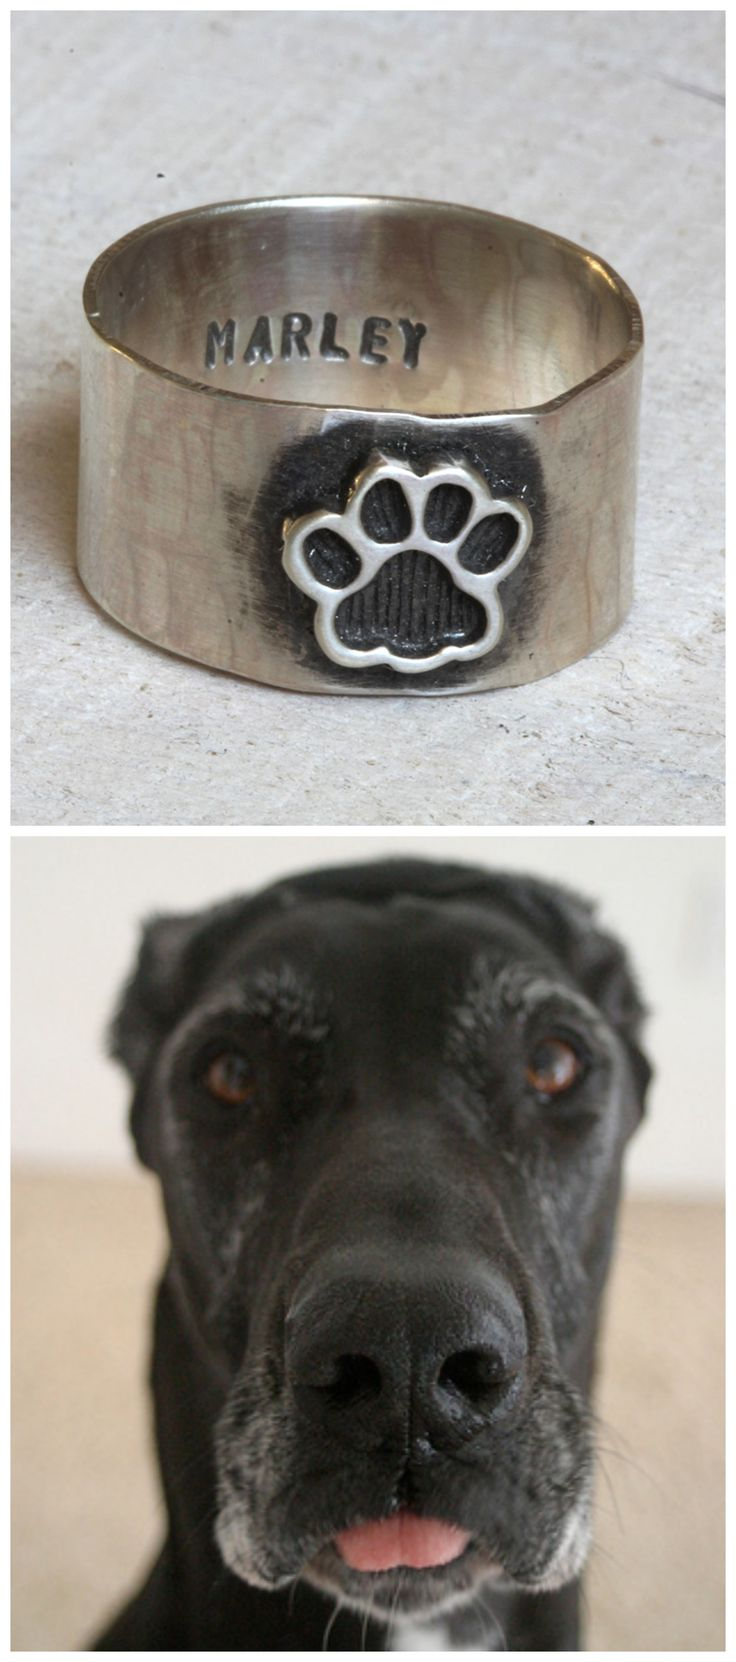 My rescued Great Dane Marley was the inspiration for this paw print ring. I love her so much!